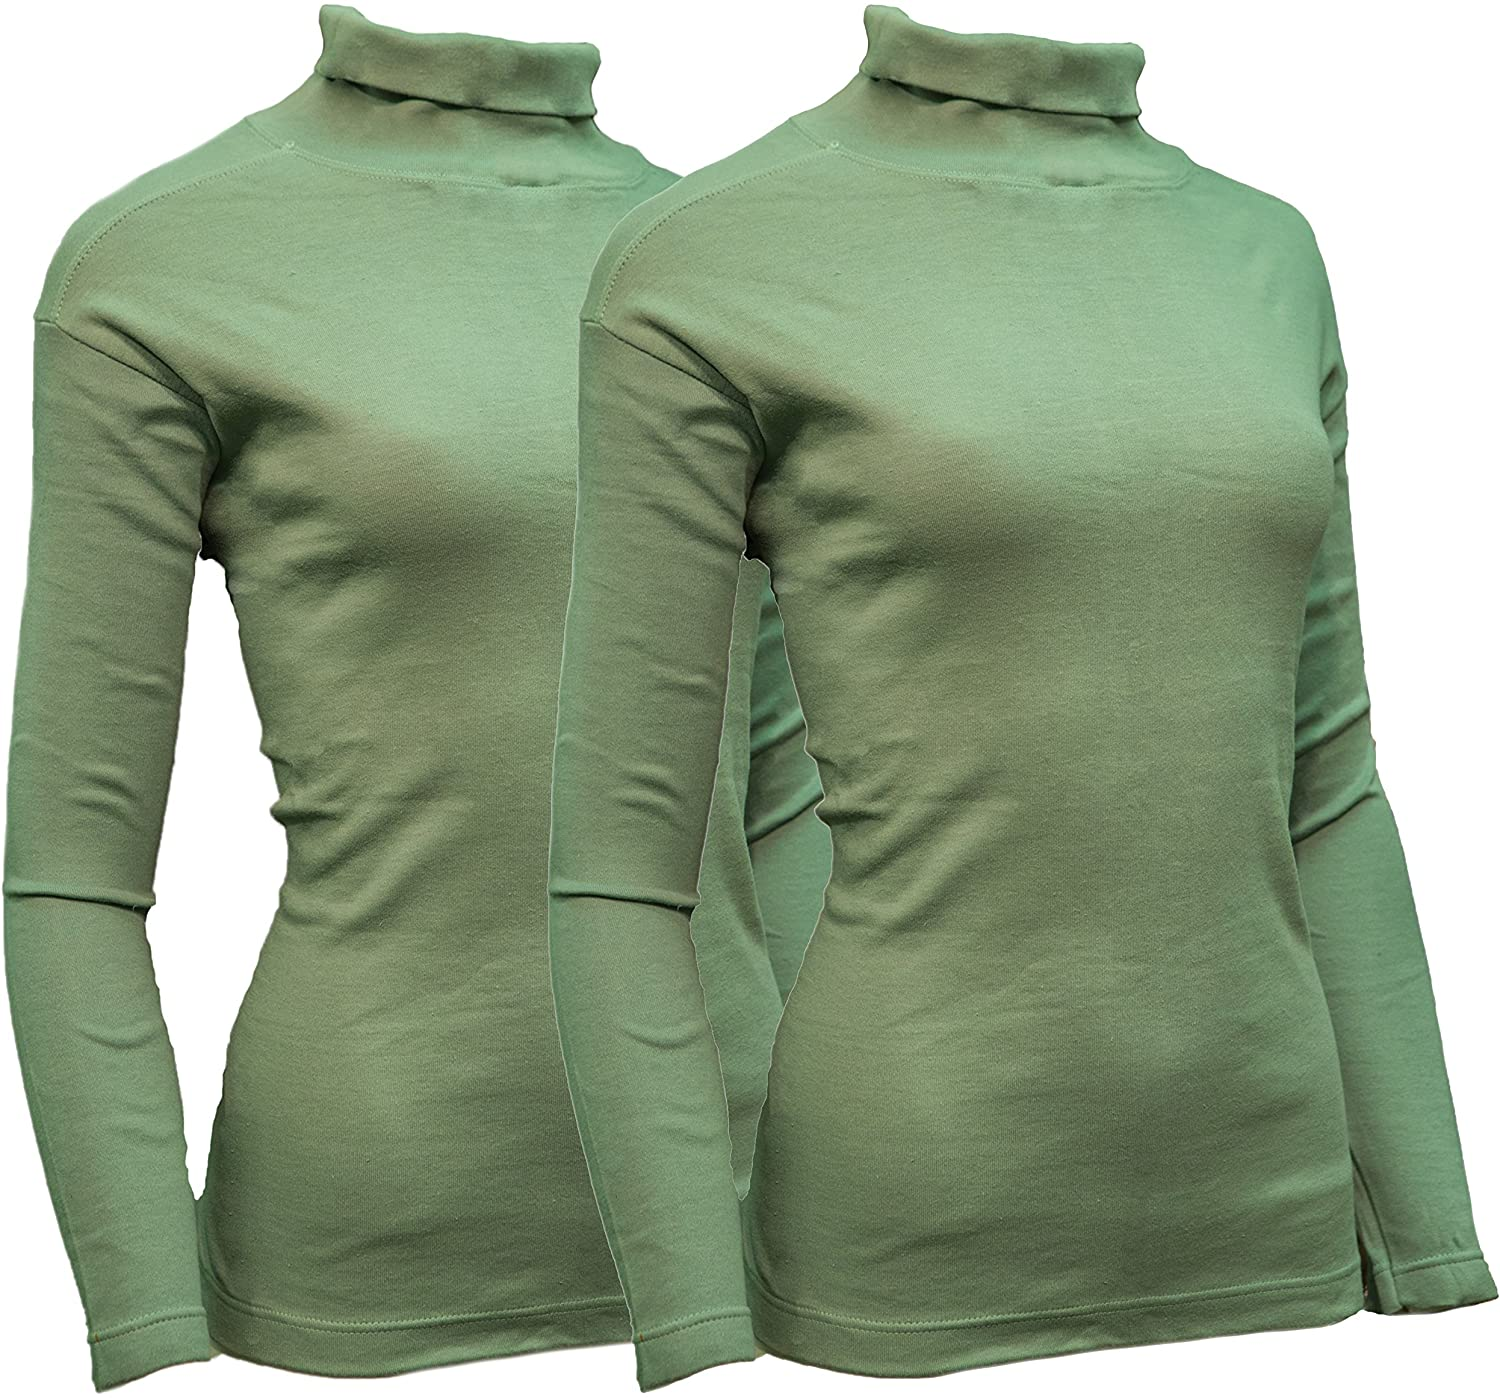 Sexy Basics Women's 2 Pack Long Sleeve Mid Weight Turtleneck Top Plus Size